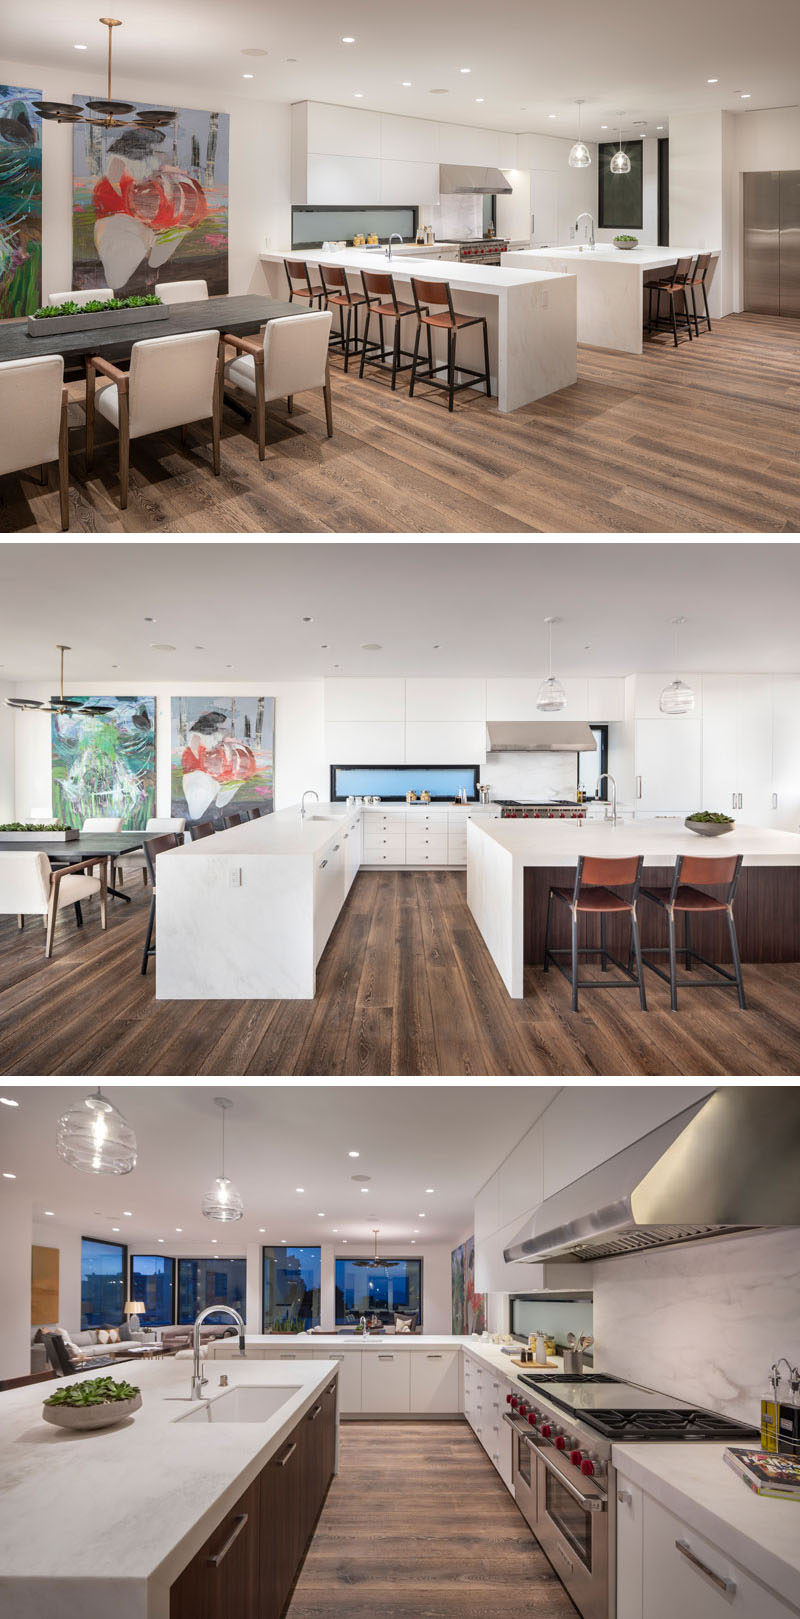 """In this modern kitchen, glossy Calcutta Caldia countertops with """"white-on-white"""" veining, are combined with locally harvested Claro Walnut, also known as California Walnut, to create a contemporary and bright look. #ModernKitchen #WhiteKitchen #KitchenDesign"""